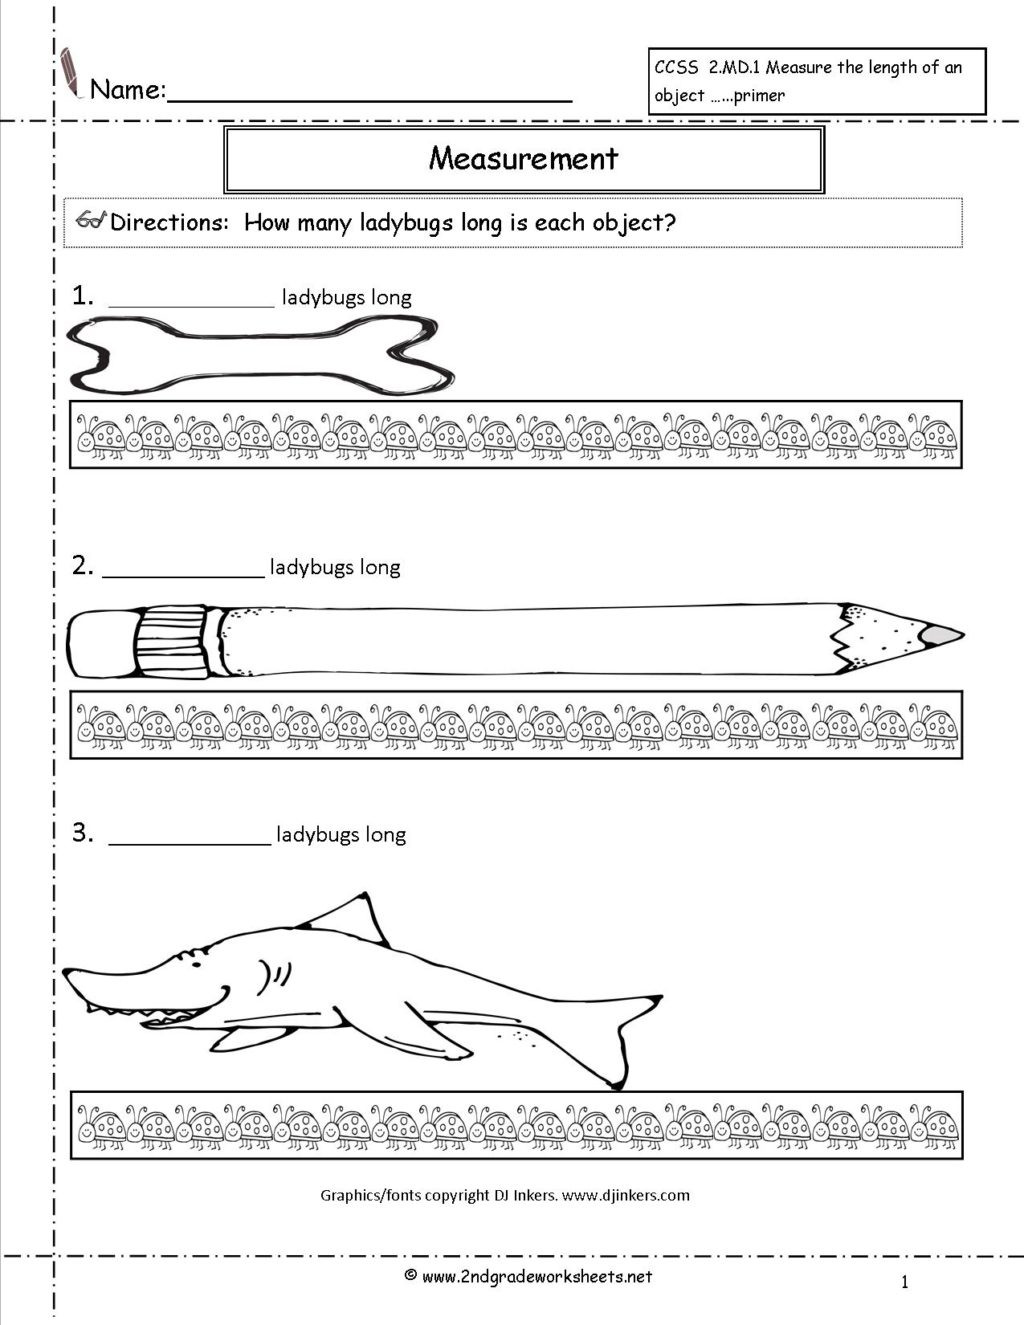 Free Measurement Worksheets Grade 1 Worksheet Ccss2md11a Second Gradeurement Worksheets and